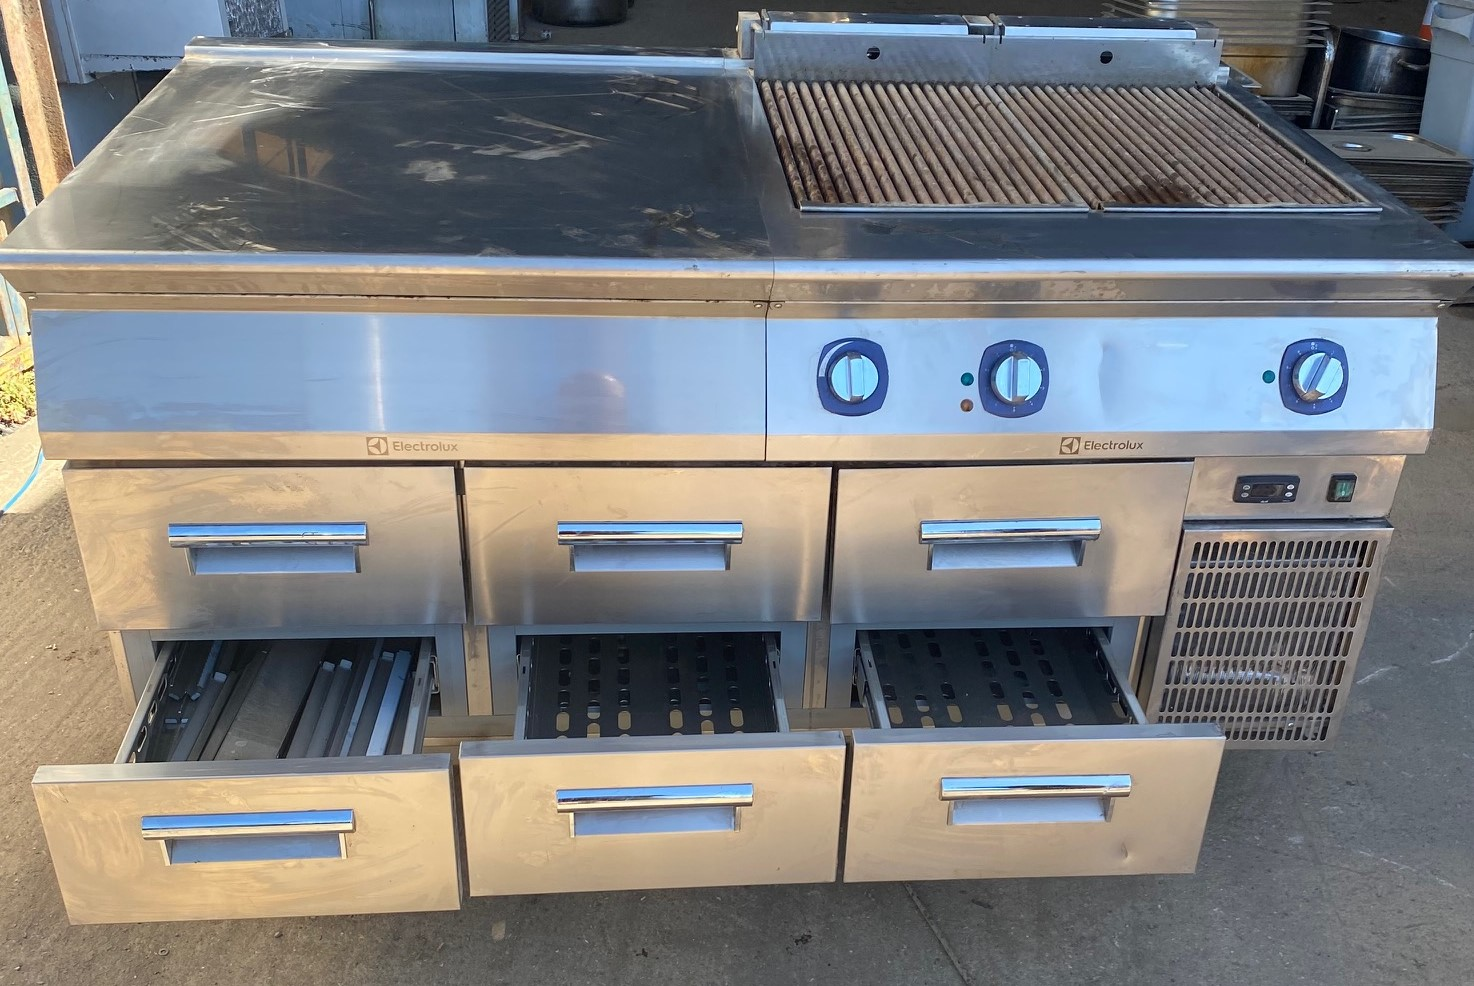 ELECTROLUX Powergrill Electric Char Grill & 6 Drawer Bench Fridge